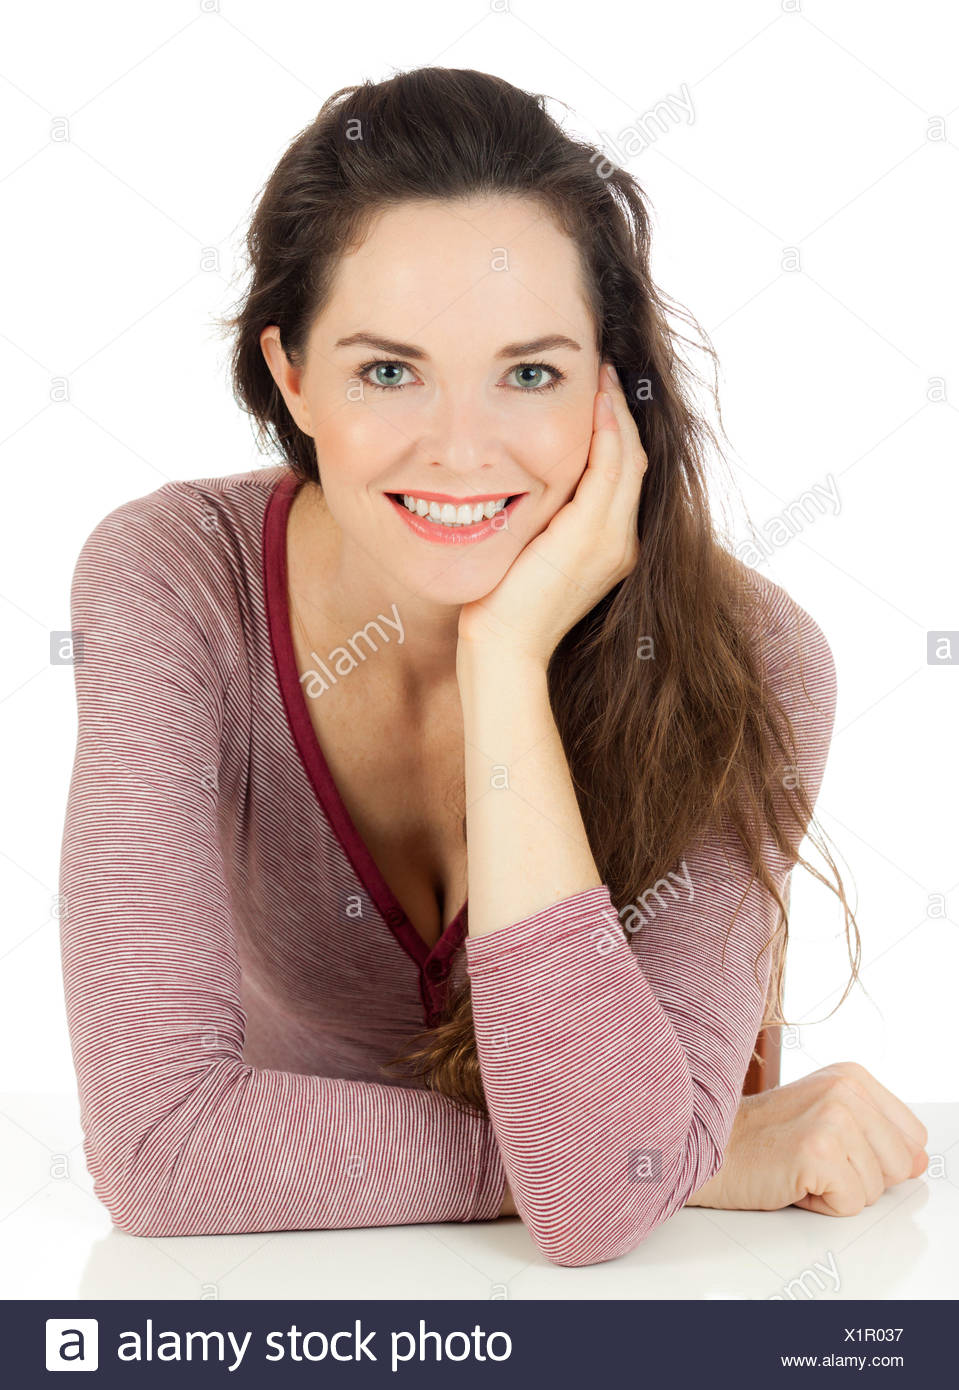 Isolated portrait of a relaxed and smiling young woman. - Stock Image